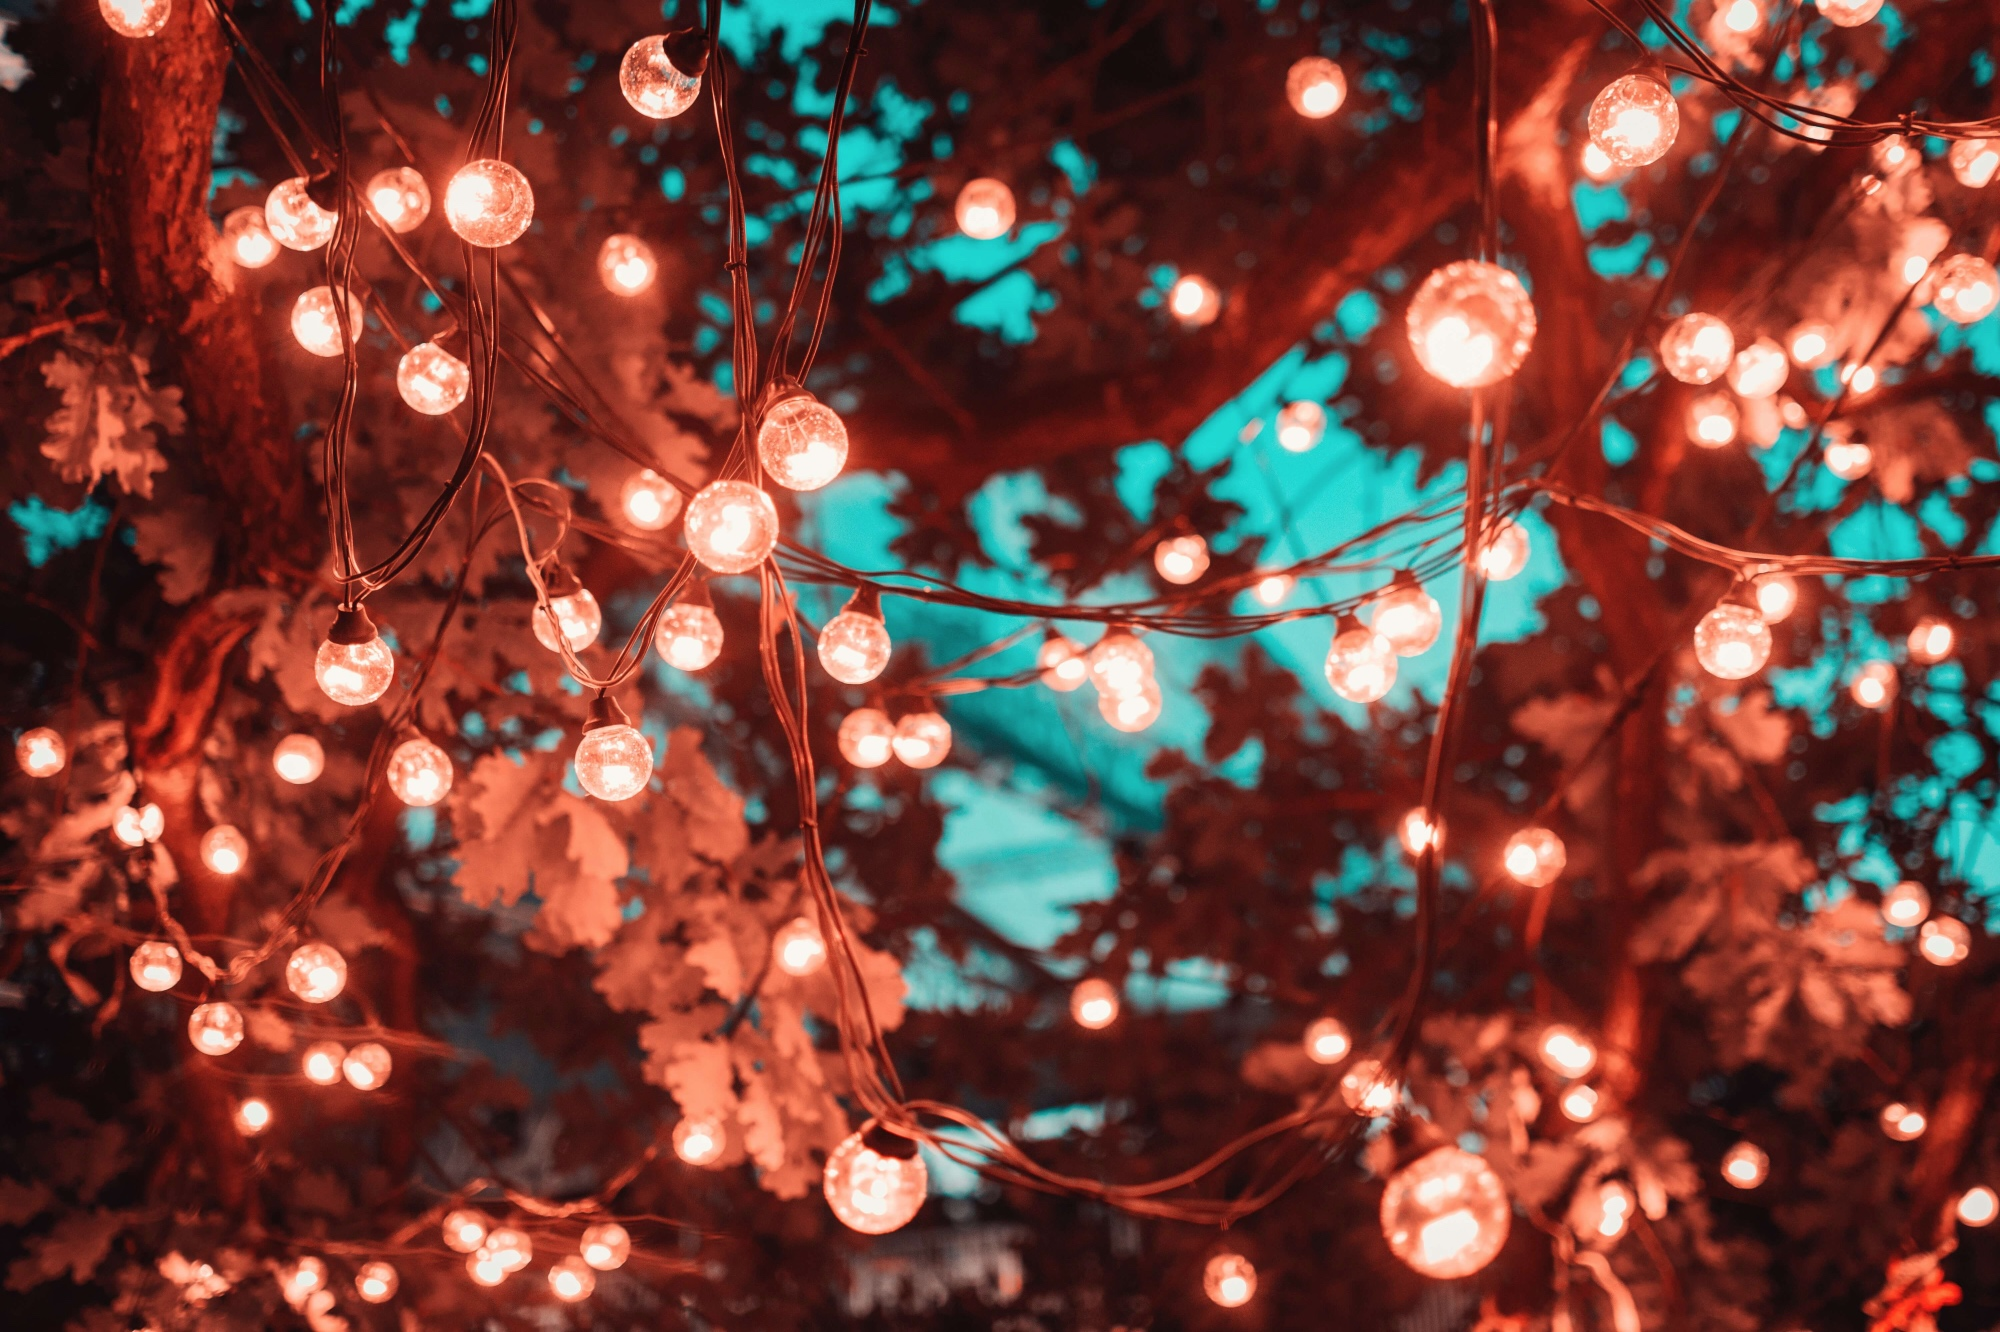 red fairy lights in a tree with a light blue background in a backyard